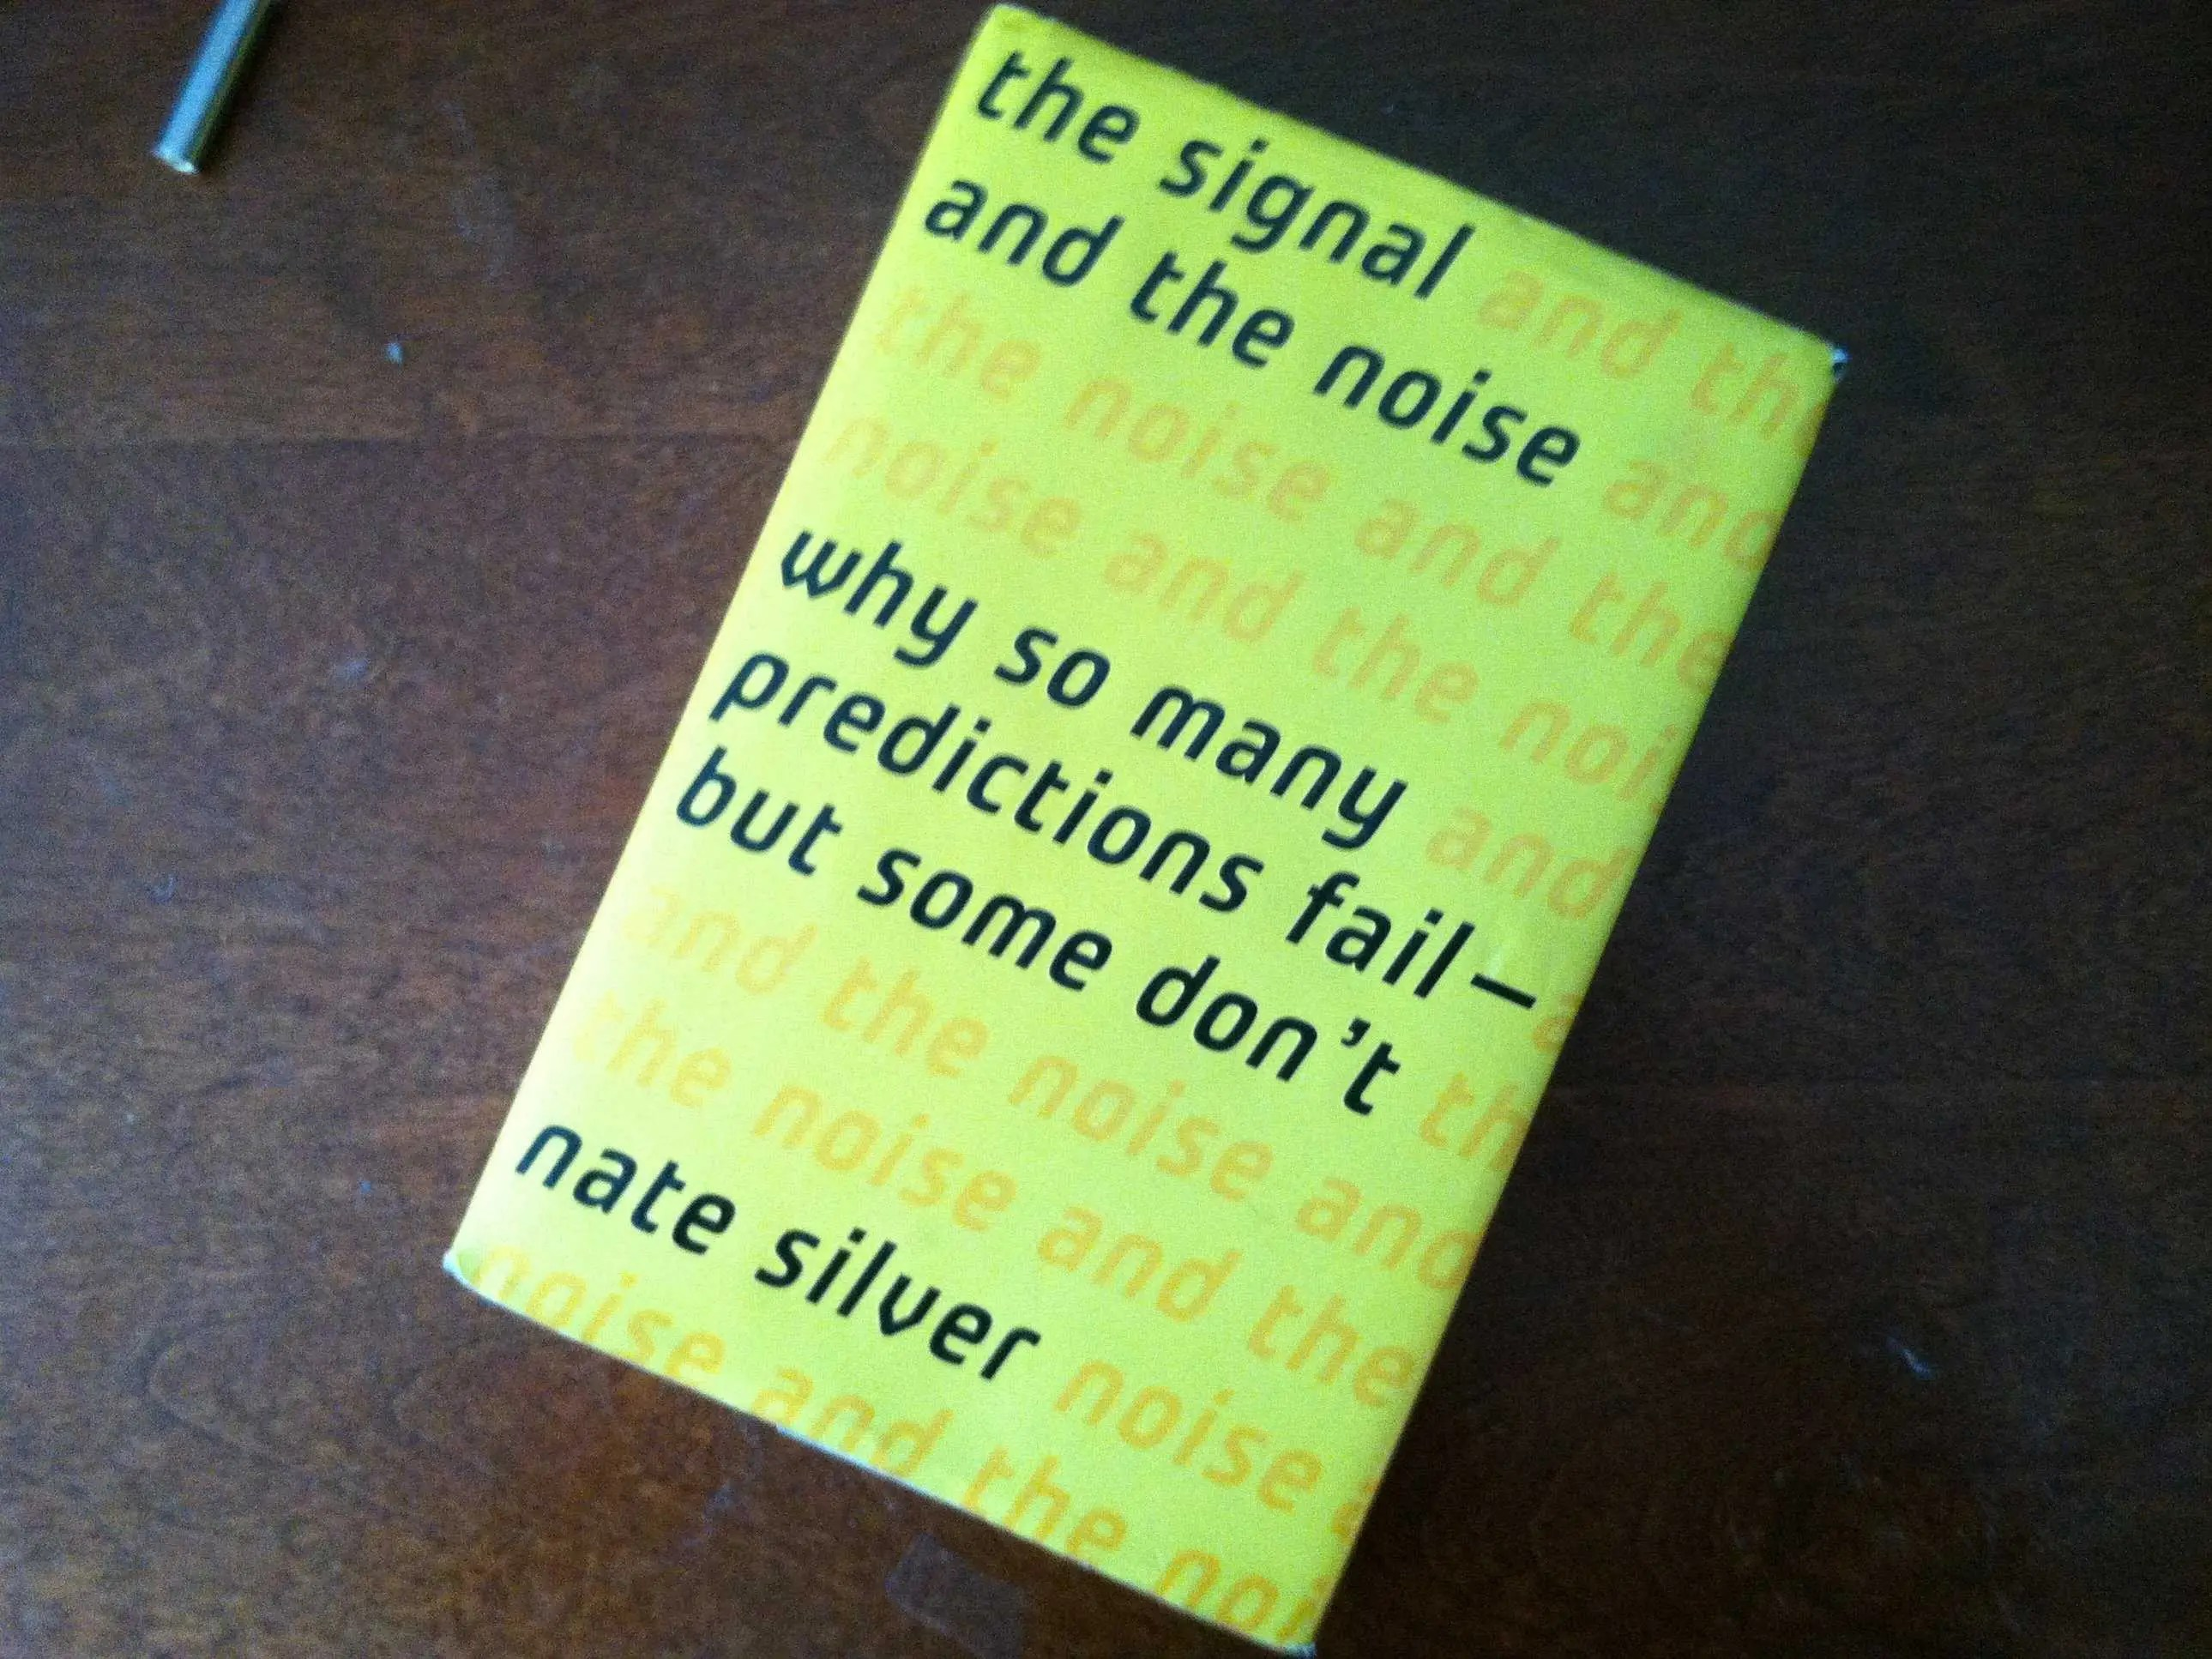 the-signal-and-the-noise-nate-silver.jpg (480×360)